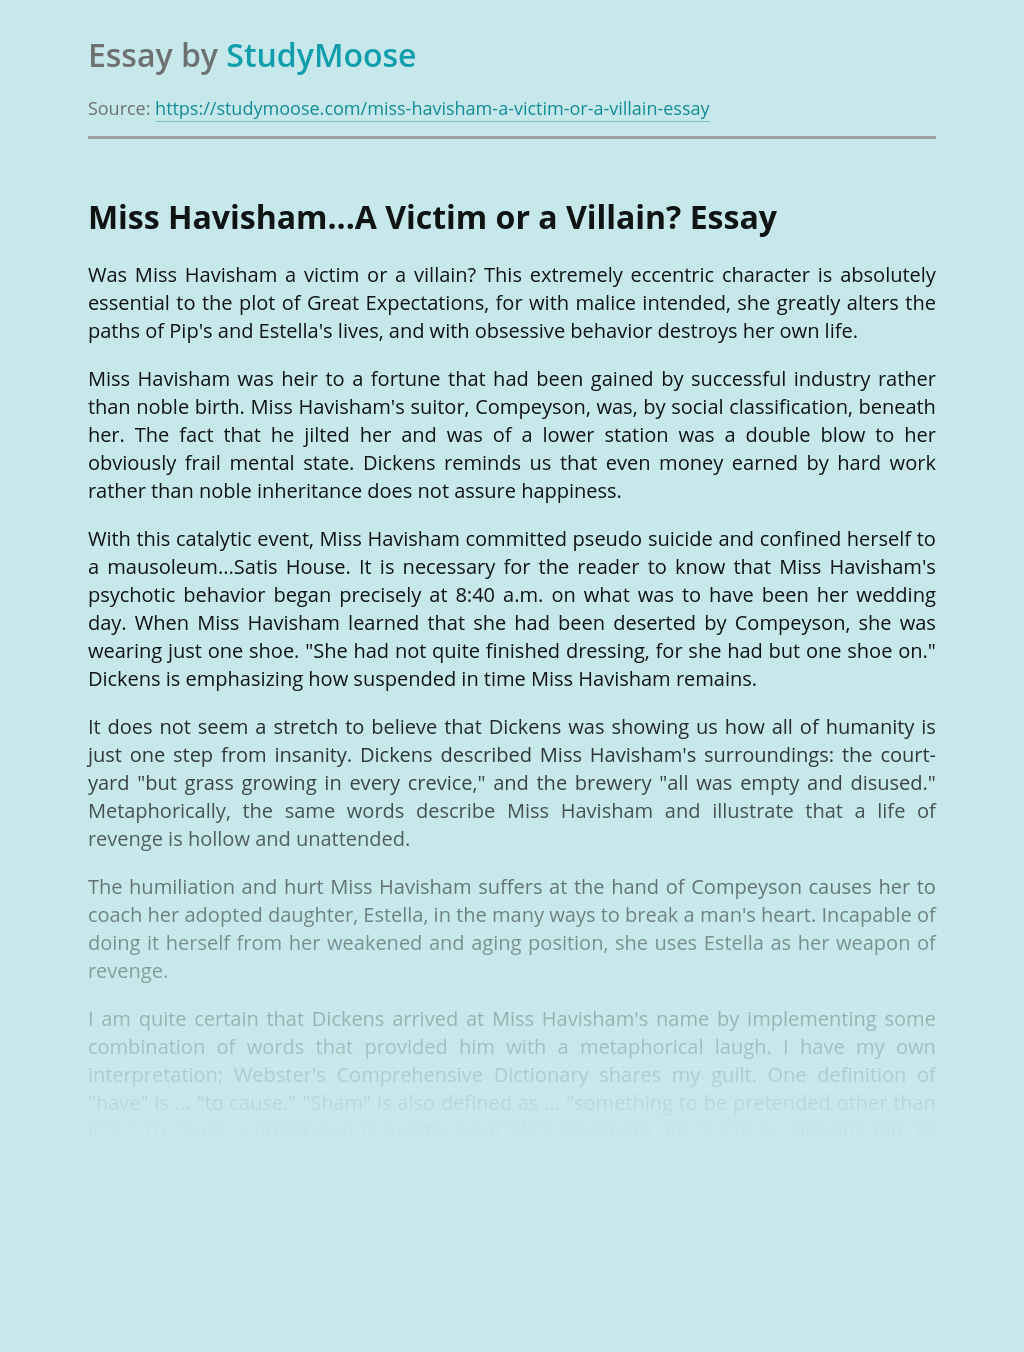 Miss Havisham...A Victim or a Villain?